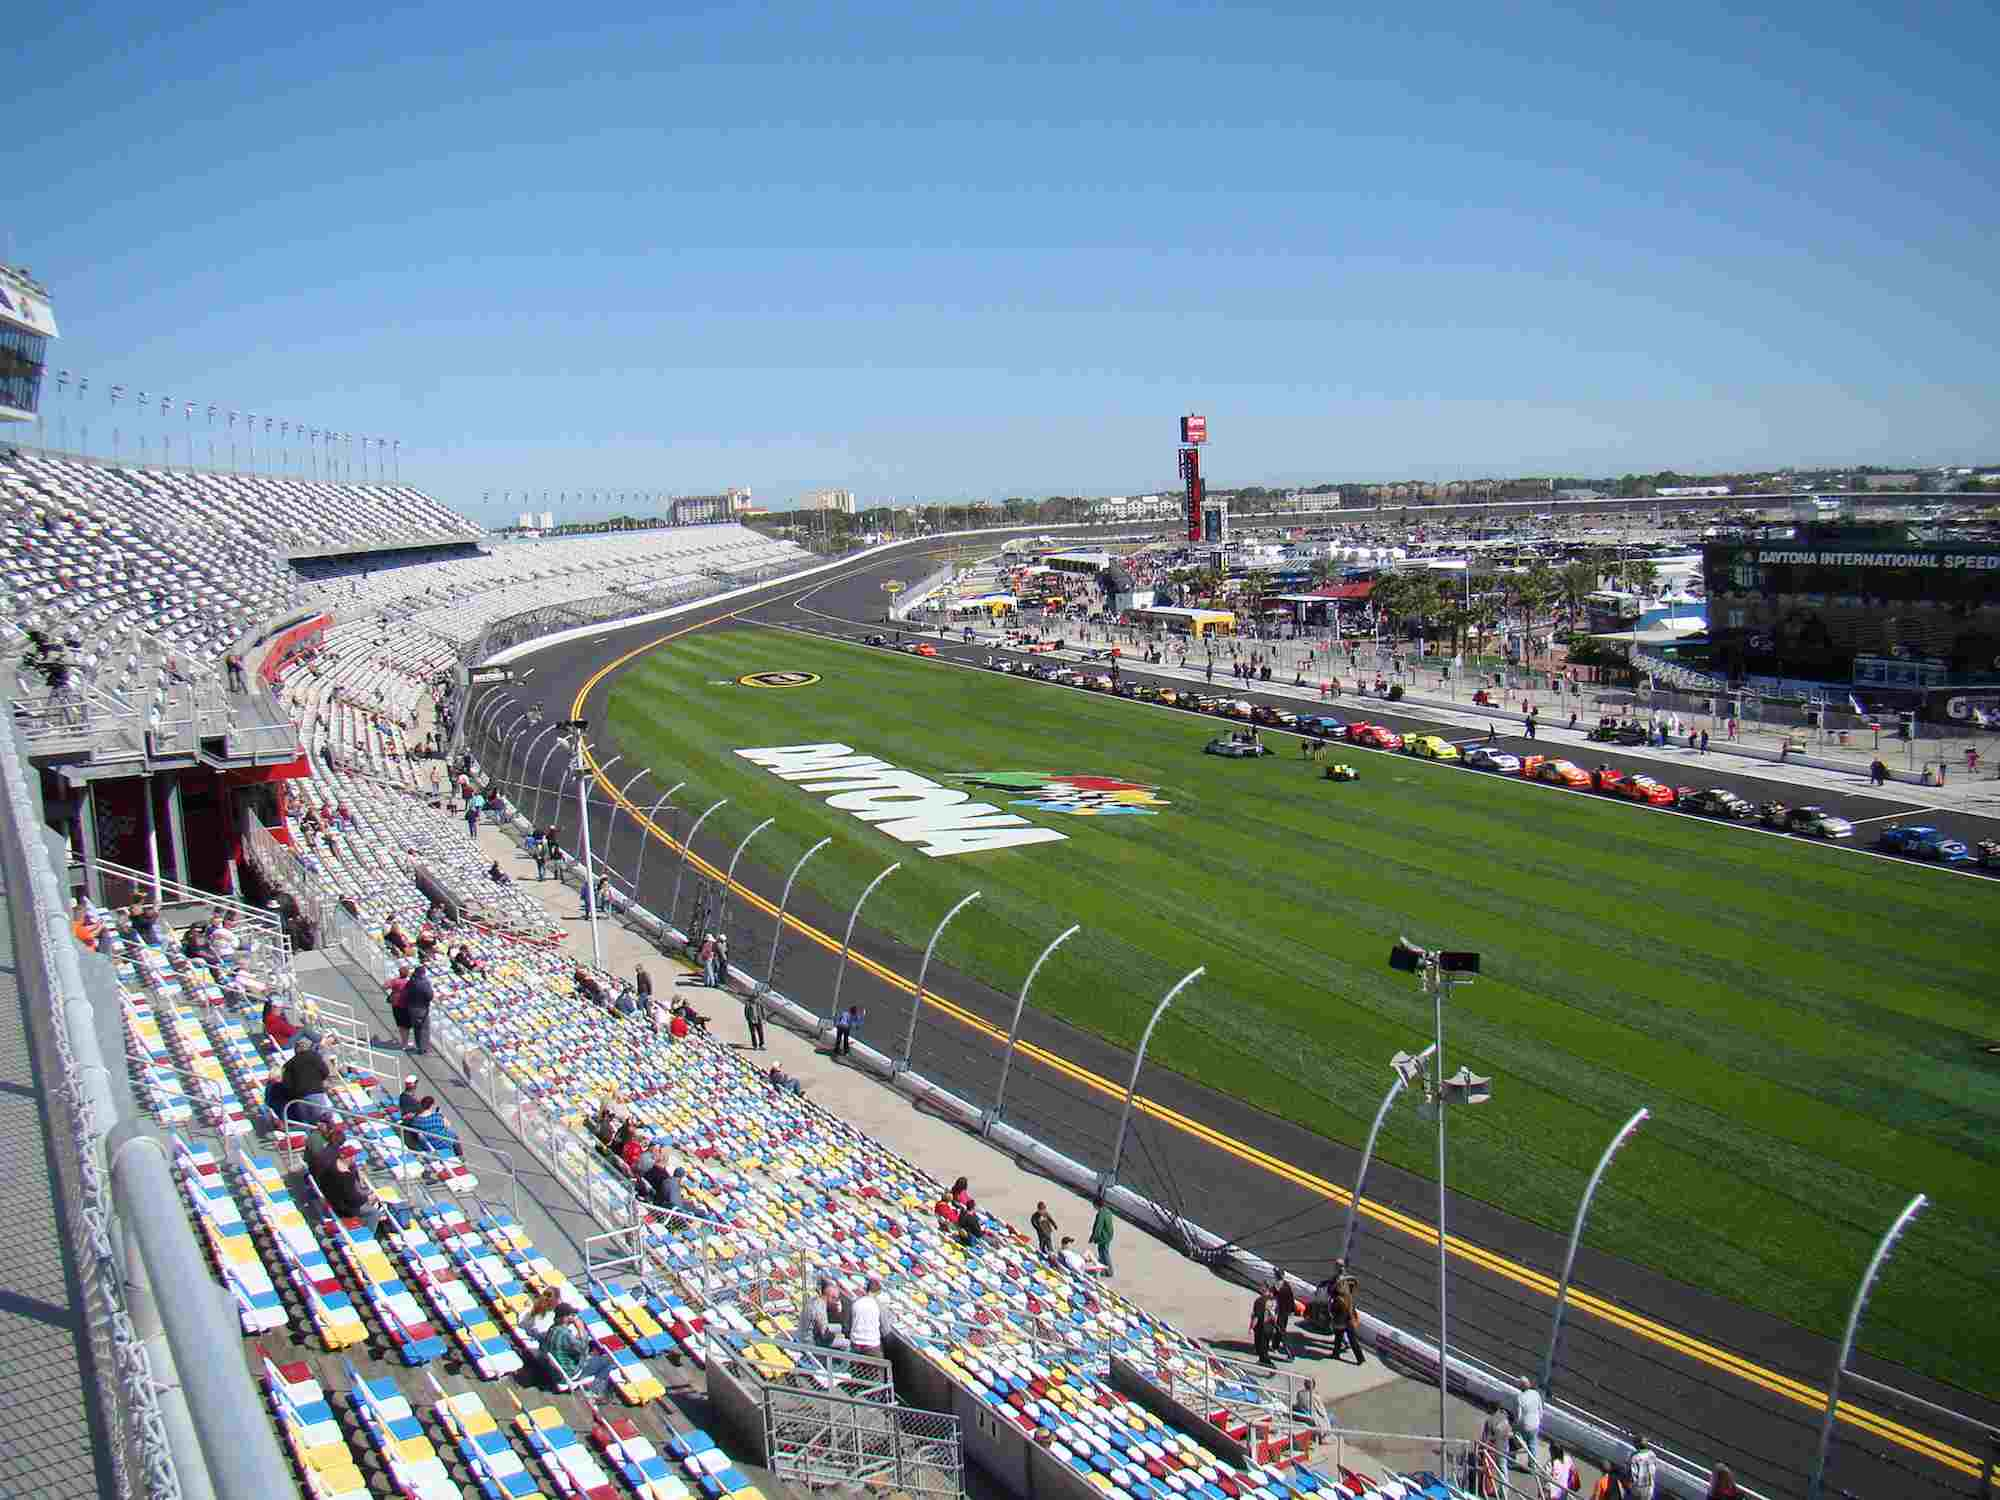 The tri-oval after the 2010-2011 repaving